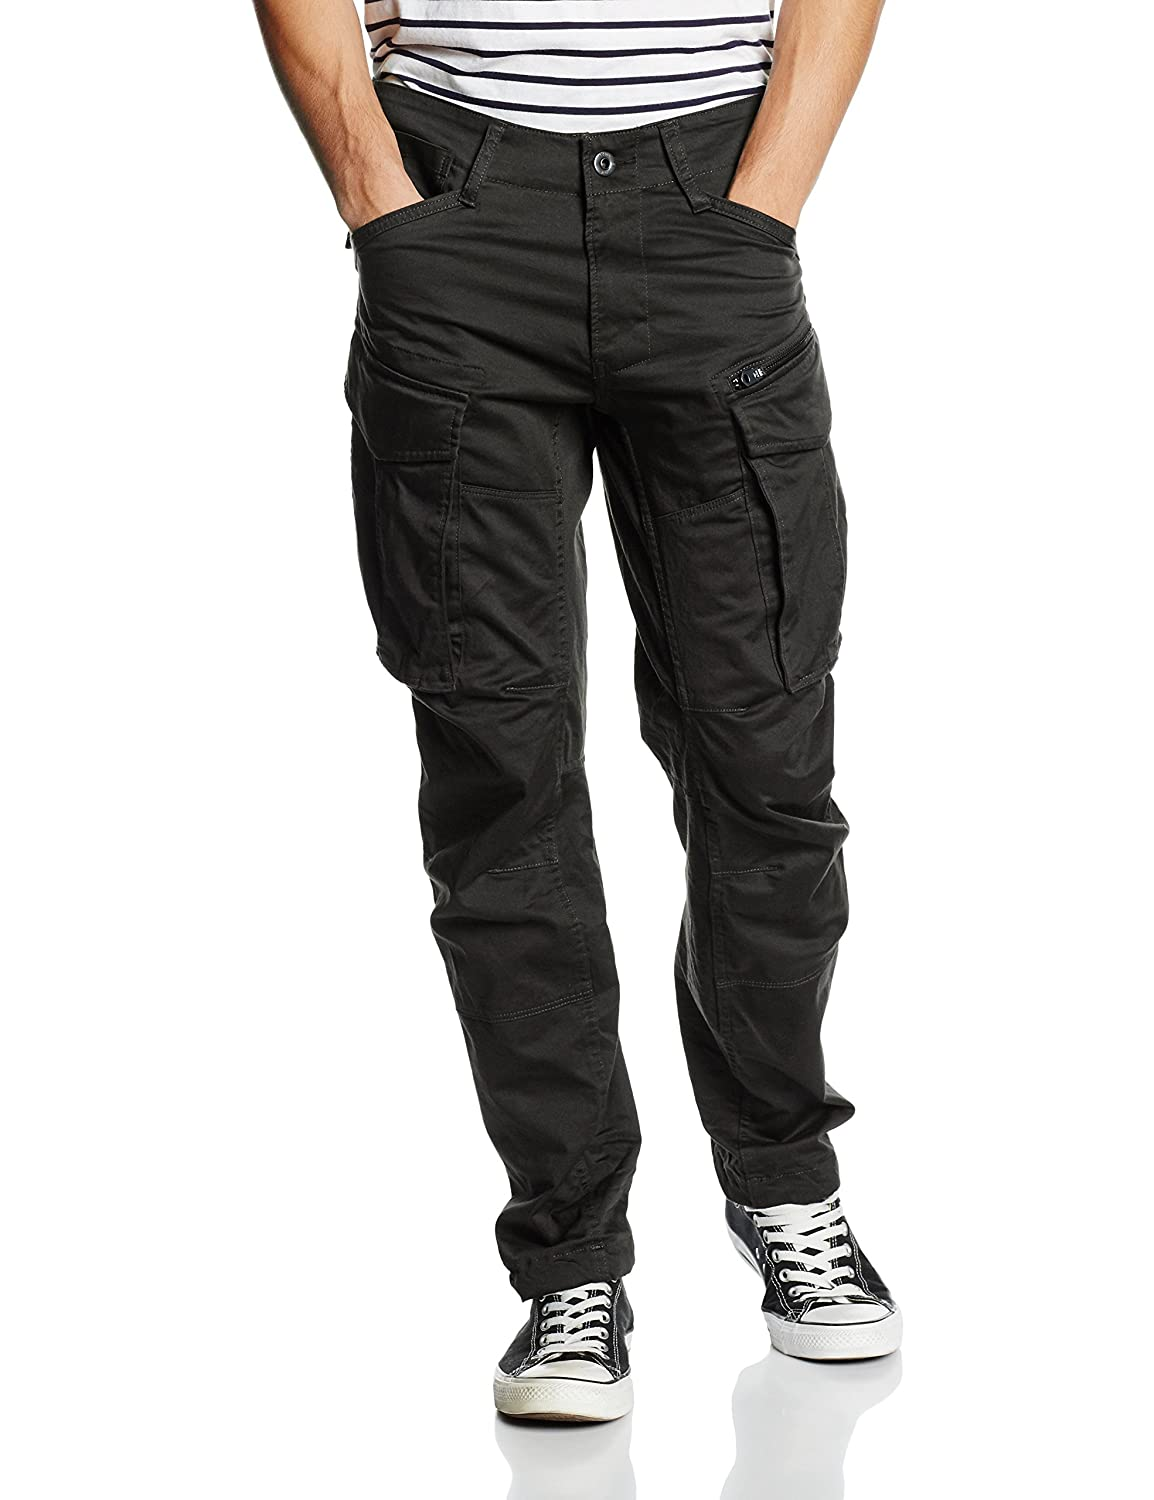 G-STAR RAW Men's Trousers G-STAR RAW Men's Trousers D02190-5126-976